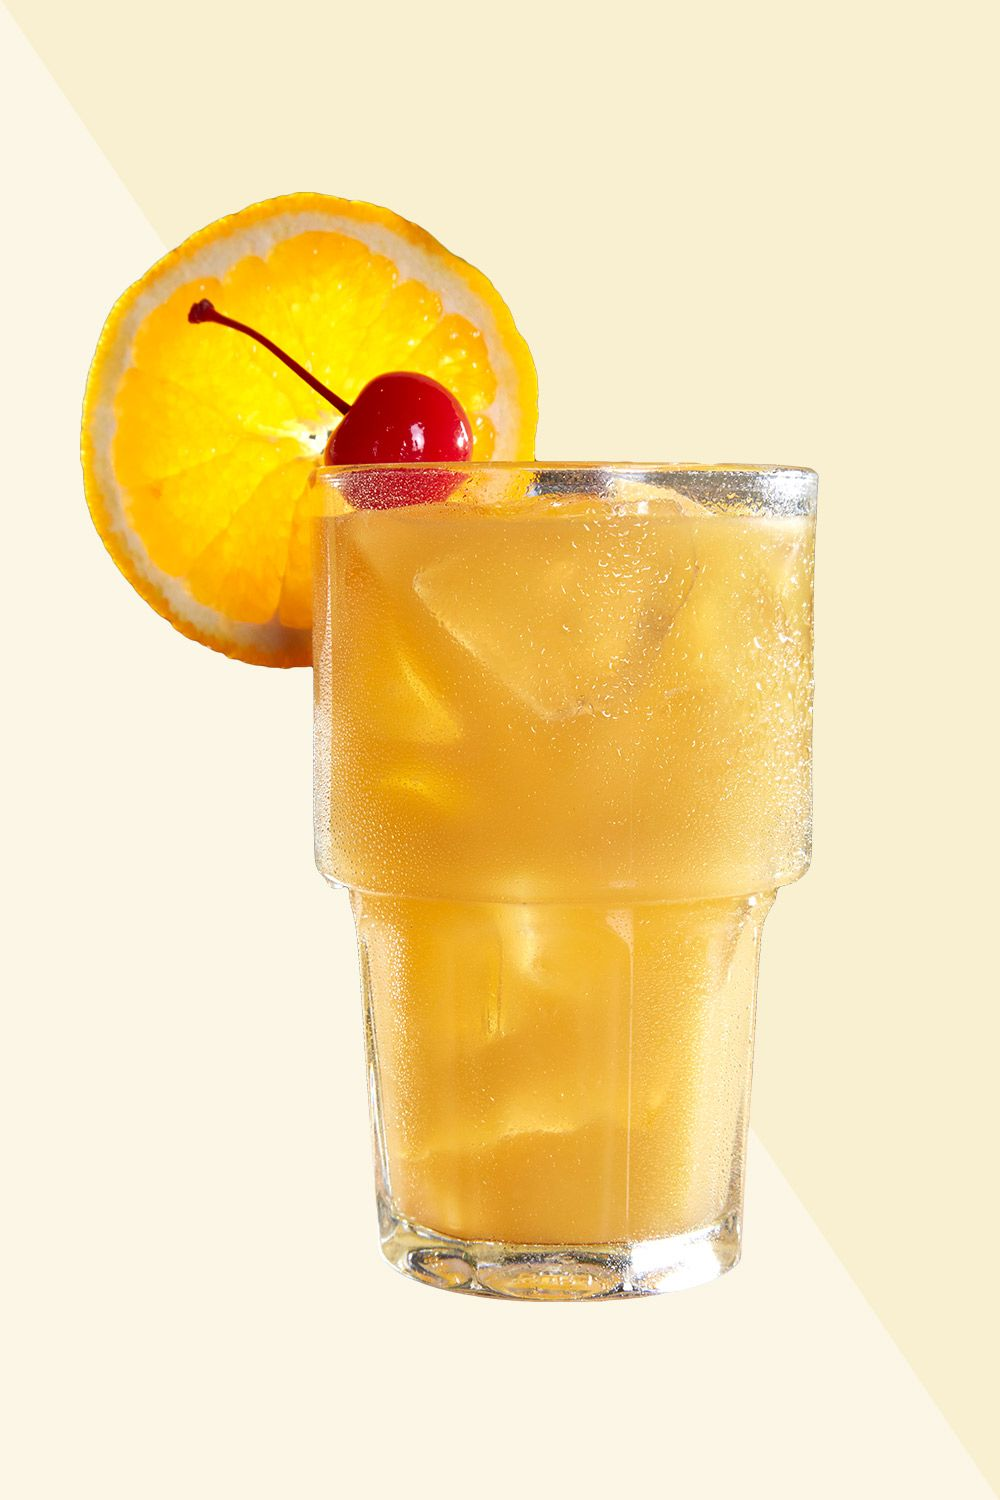 <p><strong>Ingredients:</strong></p><p>2 oz. Maker's Mark Bourbon </p><p>.75 oz. Sun Orchard Lemon Juice</p><p>.50 oz. Monin Sugar Cane (Simple Syrup)</p><p>Orange Slice & Cherry</p><p><strong>Directions:</strong> </p><p>Pour all ingredients into shaker tin and add ice. Shake ingredients vigorously, then strain over fresh ice into 12 oz Highball glass. Garnish with orange slice and cherry. </p><p><em>Courtesy Tilted Kilt</em><br></p>